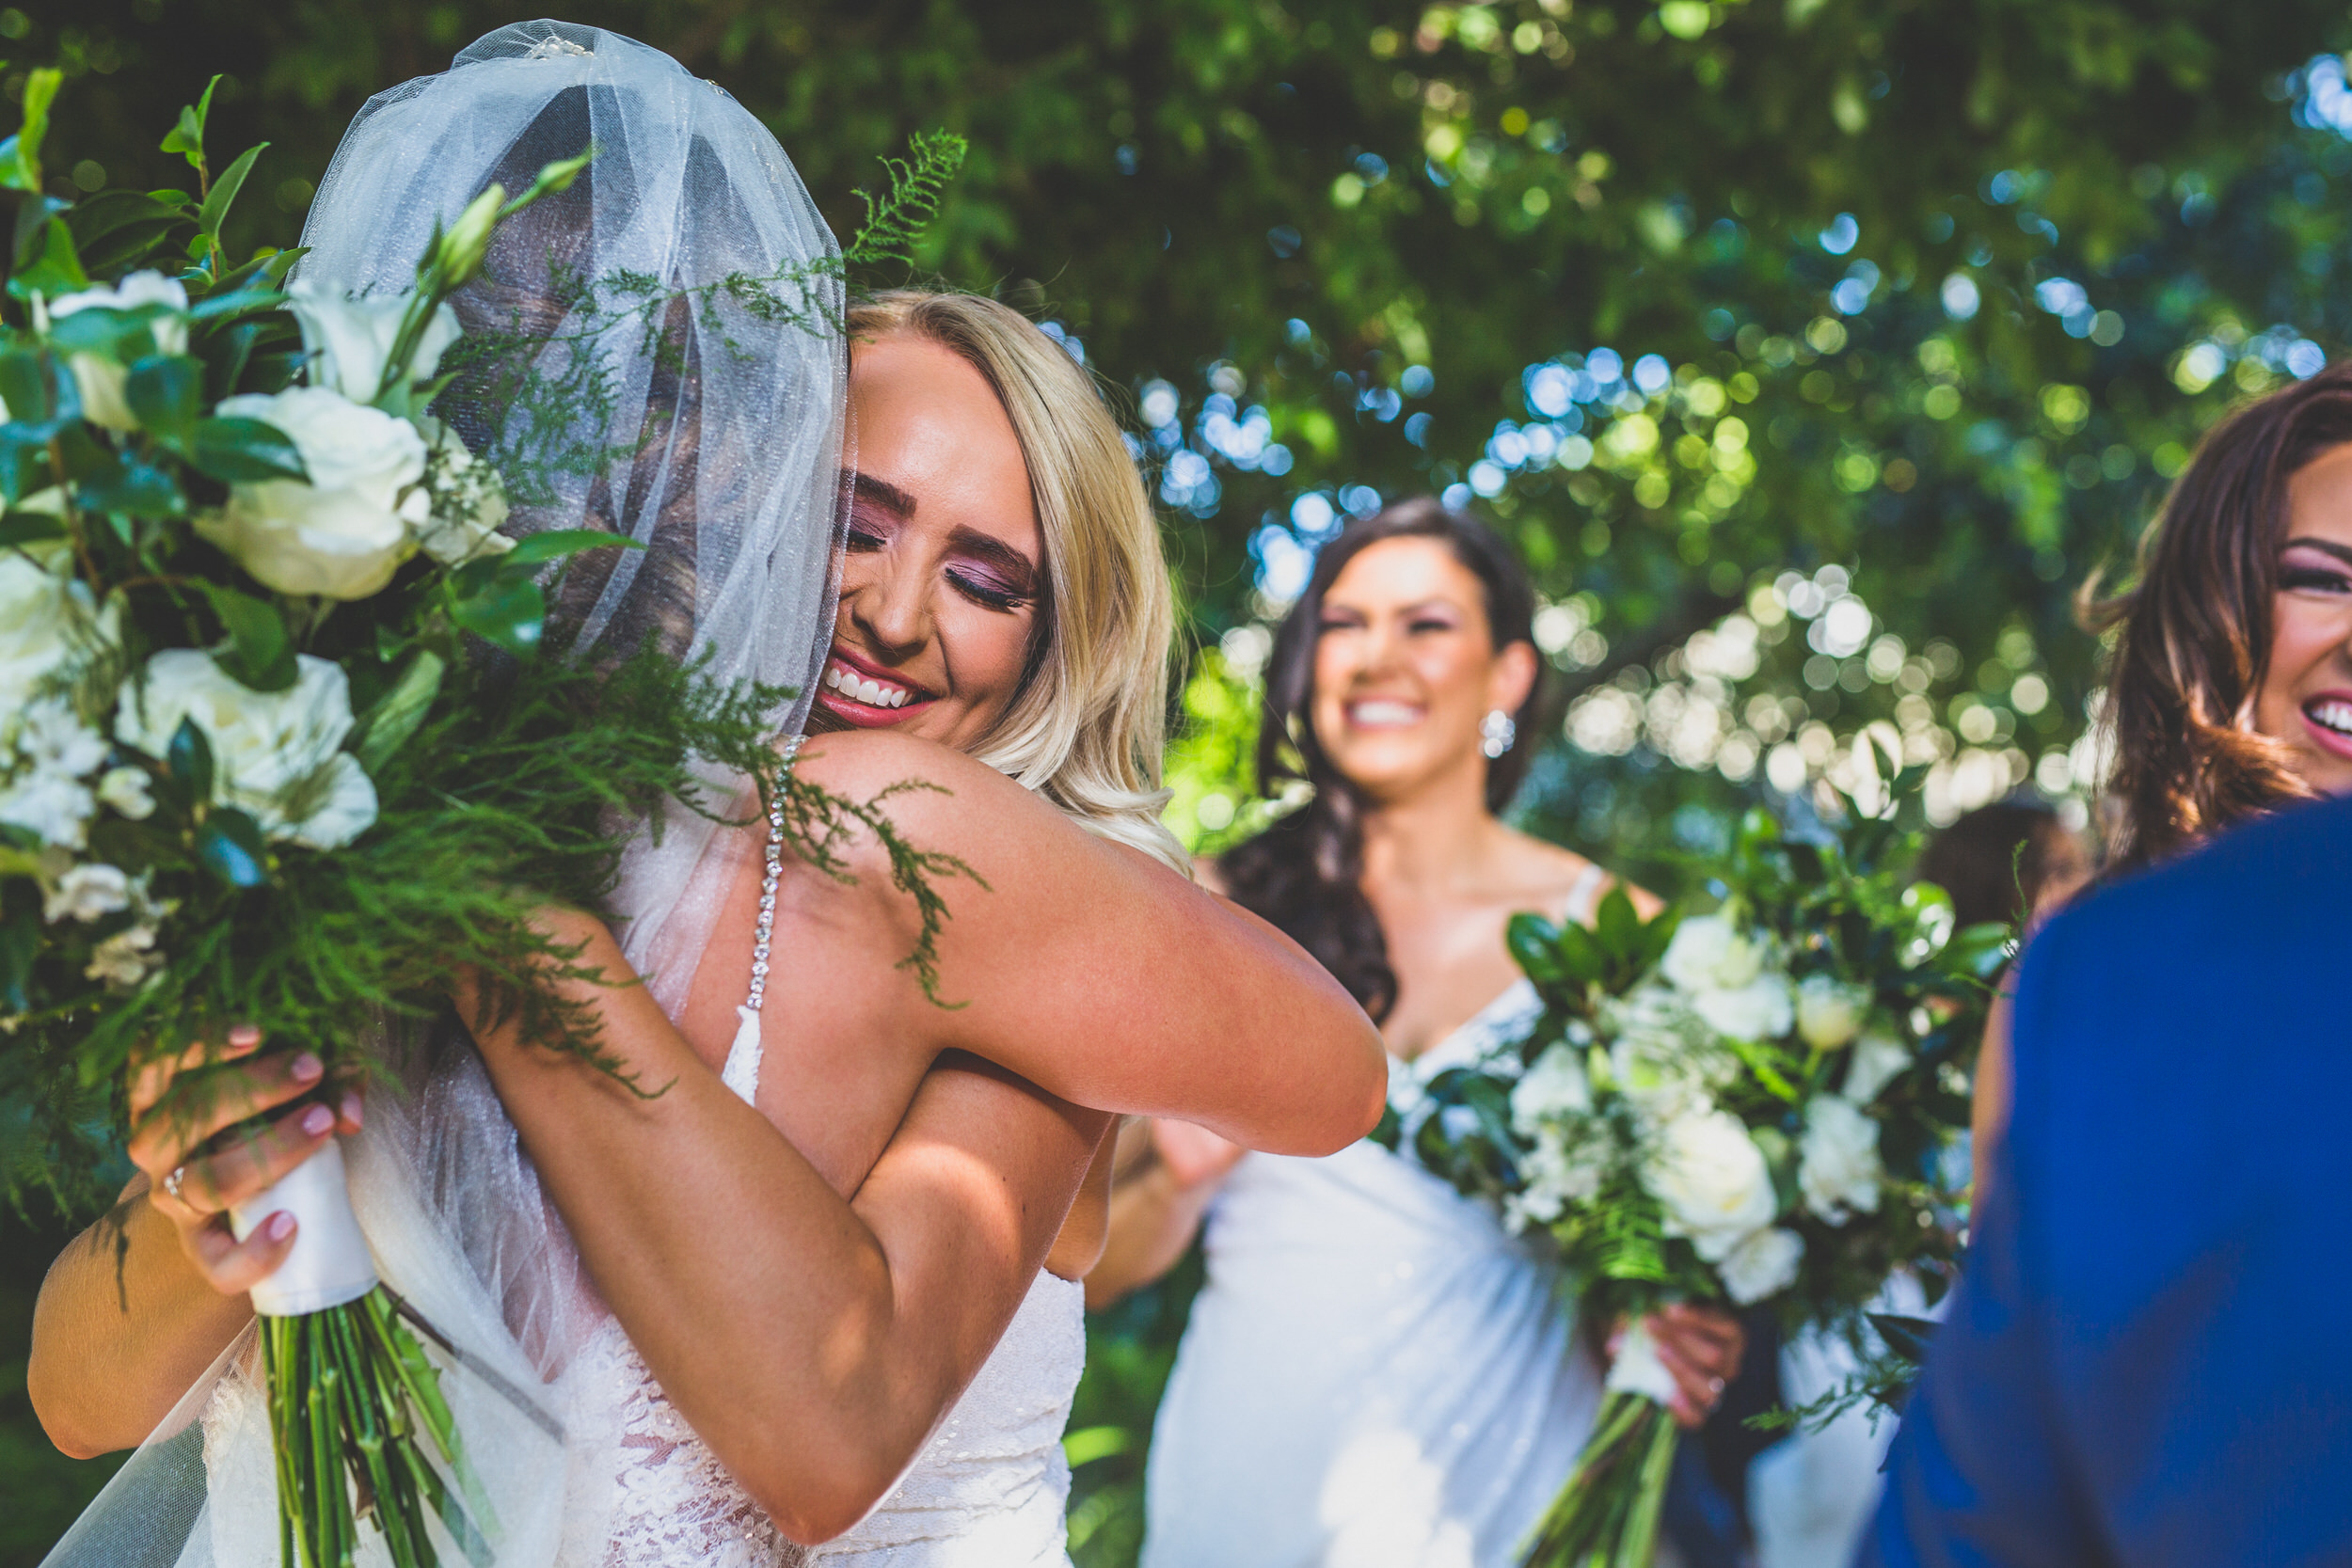 A bridesmaid congratulating her best friend, the bride.